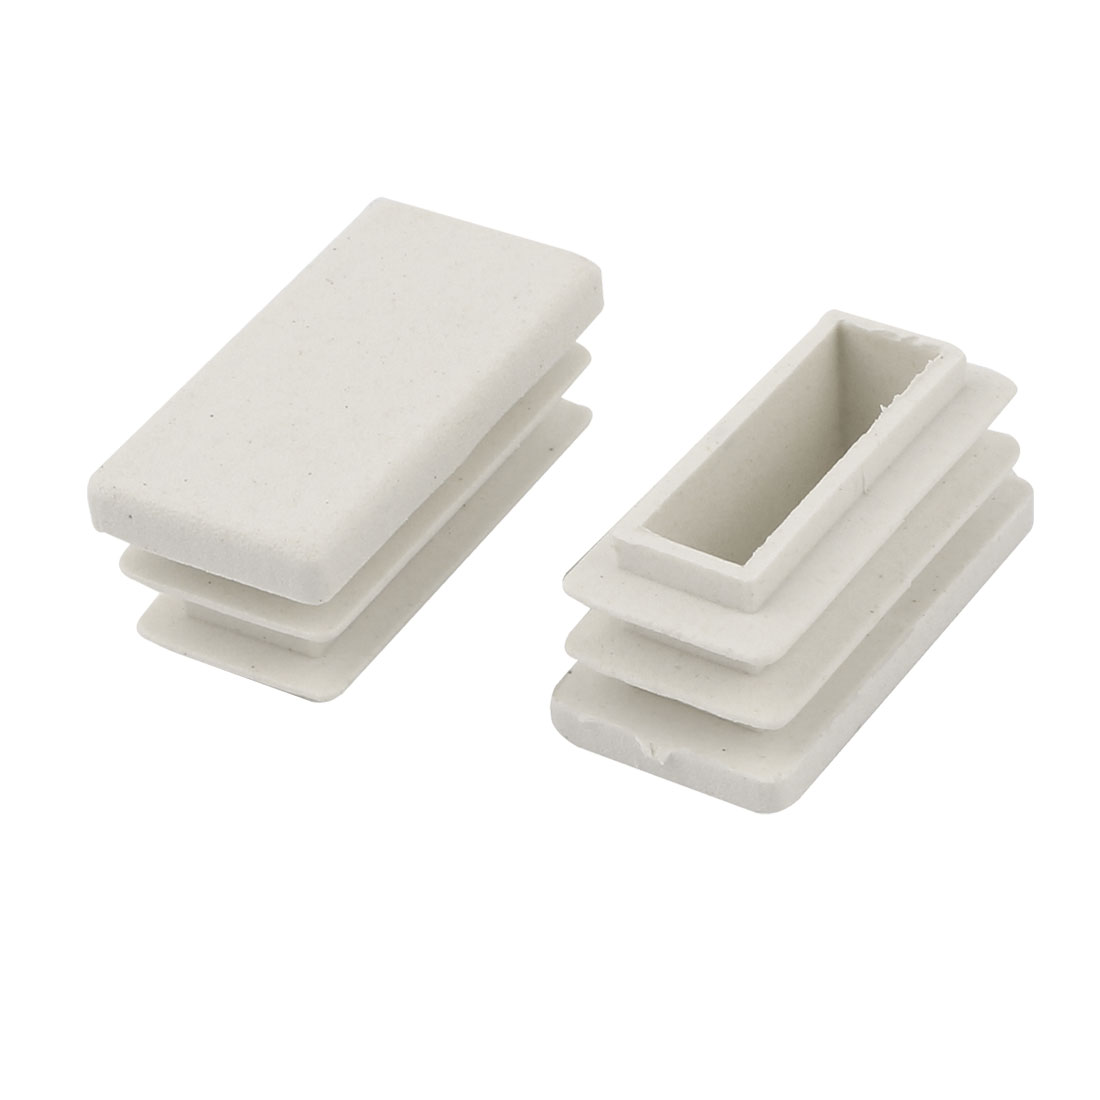 2 Pieces White Plastic Rectangle Blanking End Caps Tubing Tube Inserts 15mm x 30mm